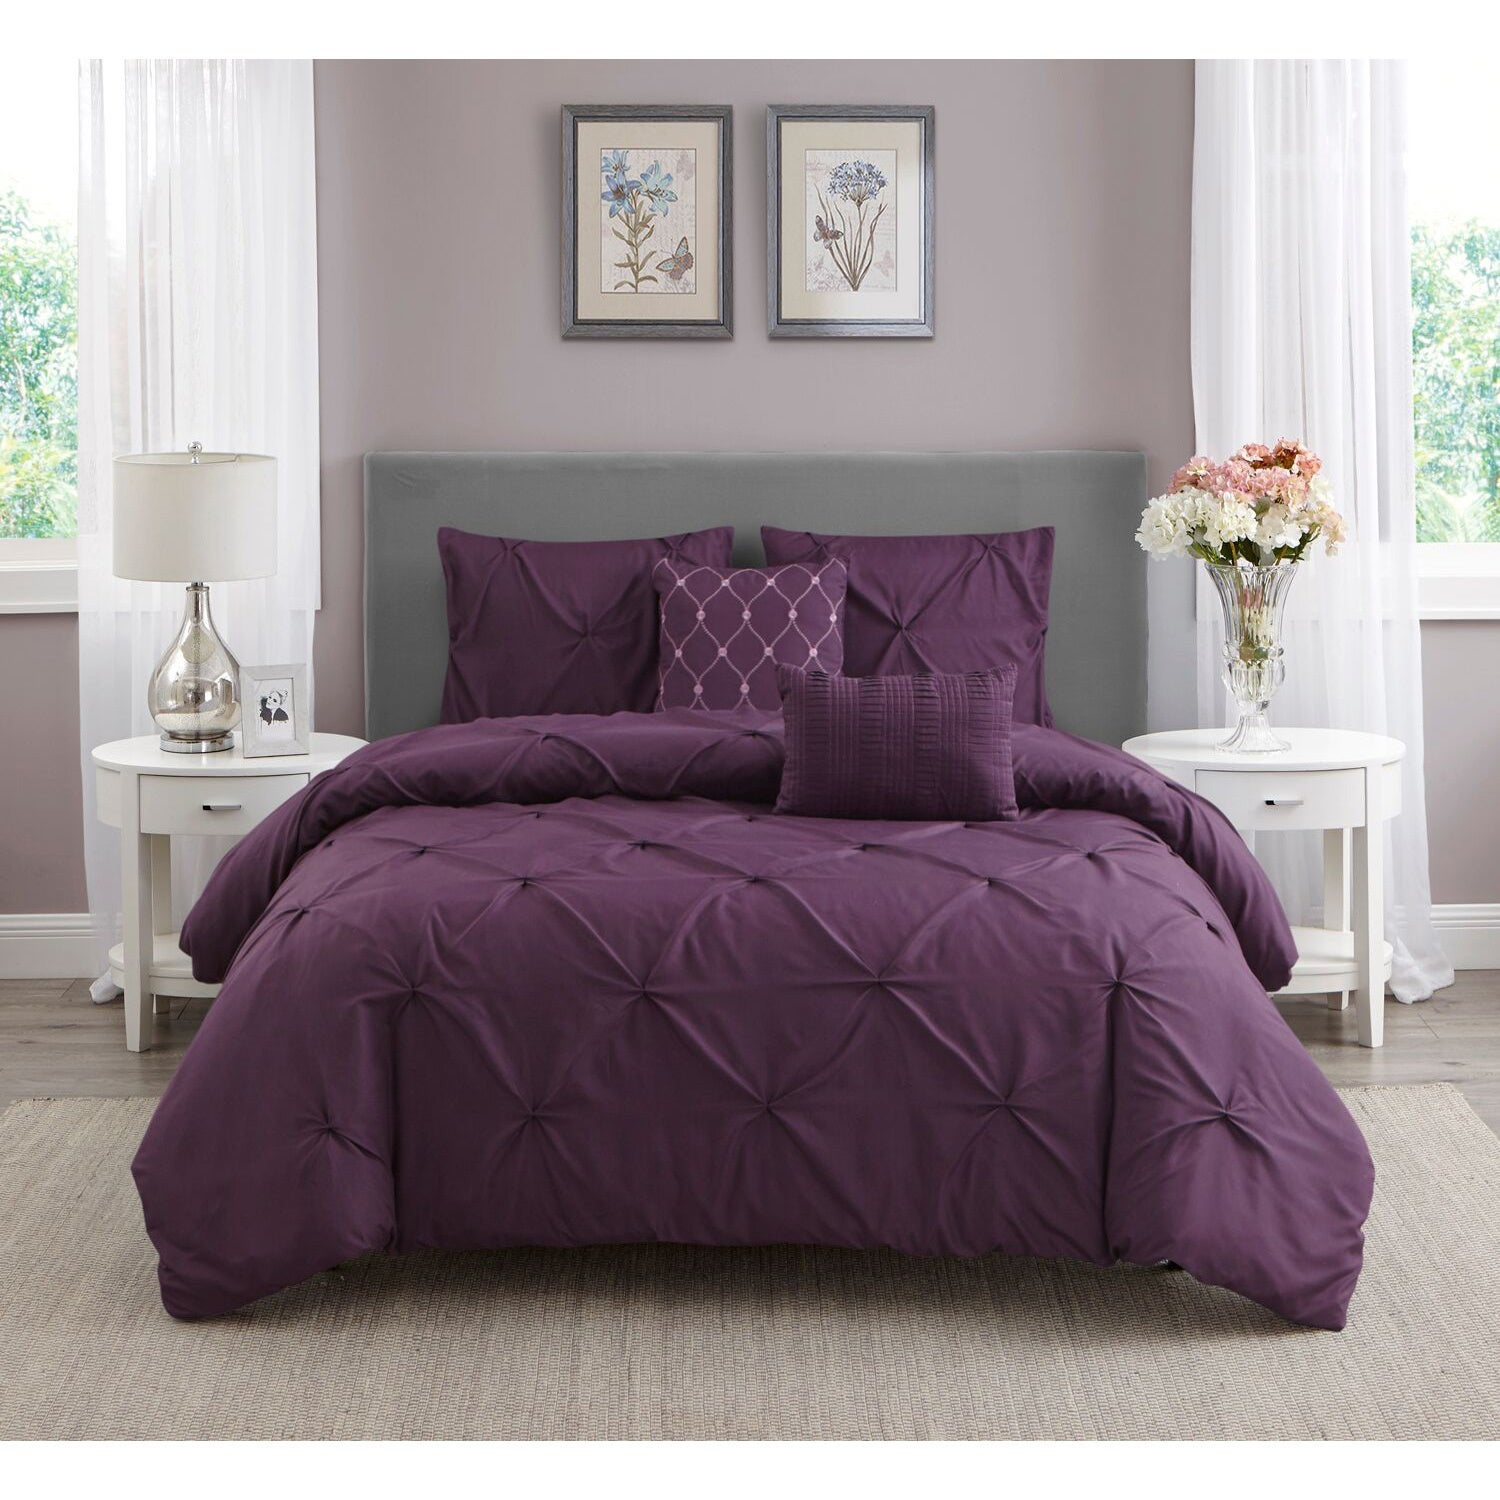 home osnat block set embroidered bag pin in color quilted piece a chic design lilac comforter bed